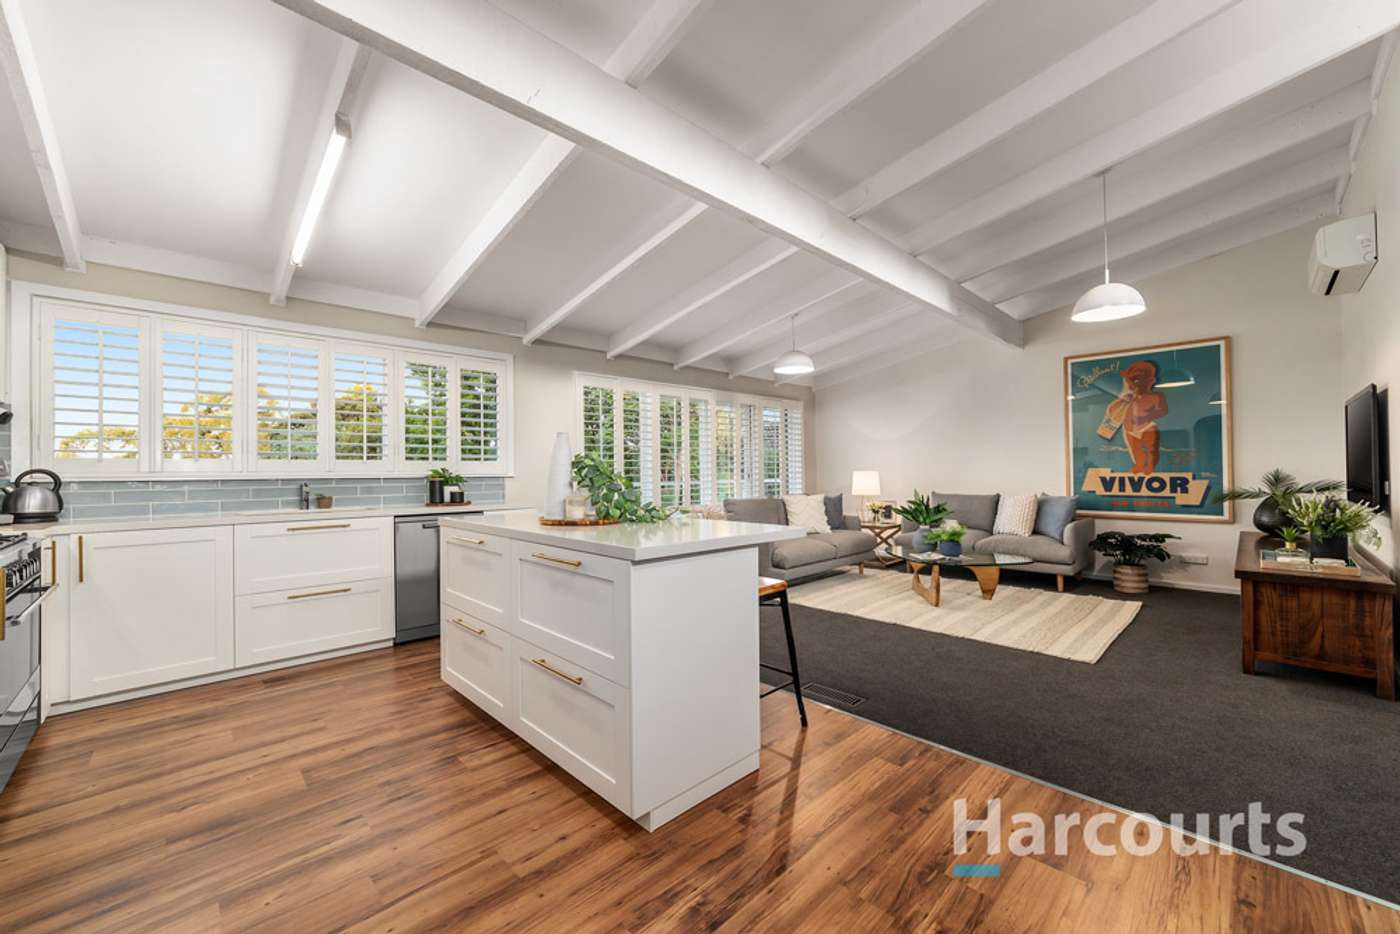 Main view of Homely house listing, 3 Putney Close, Wantirna VIC 3152